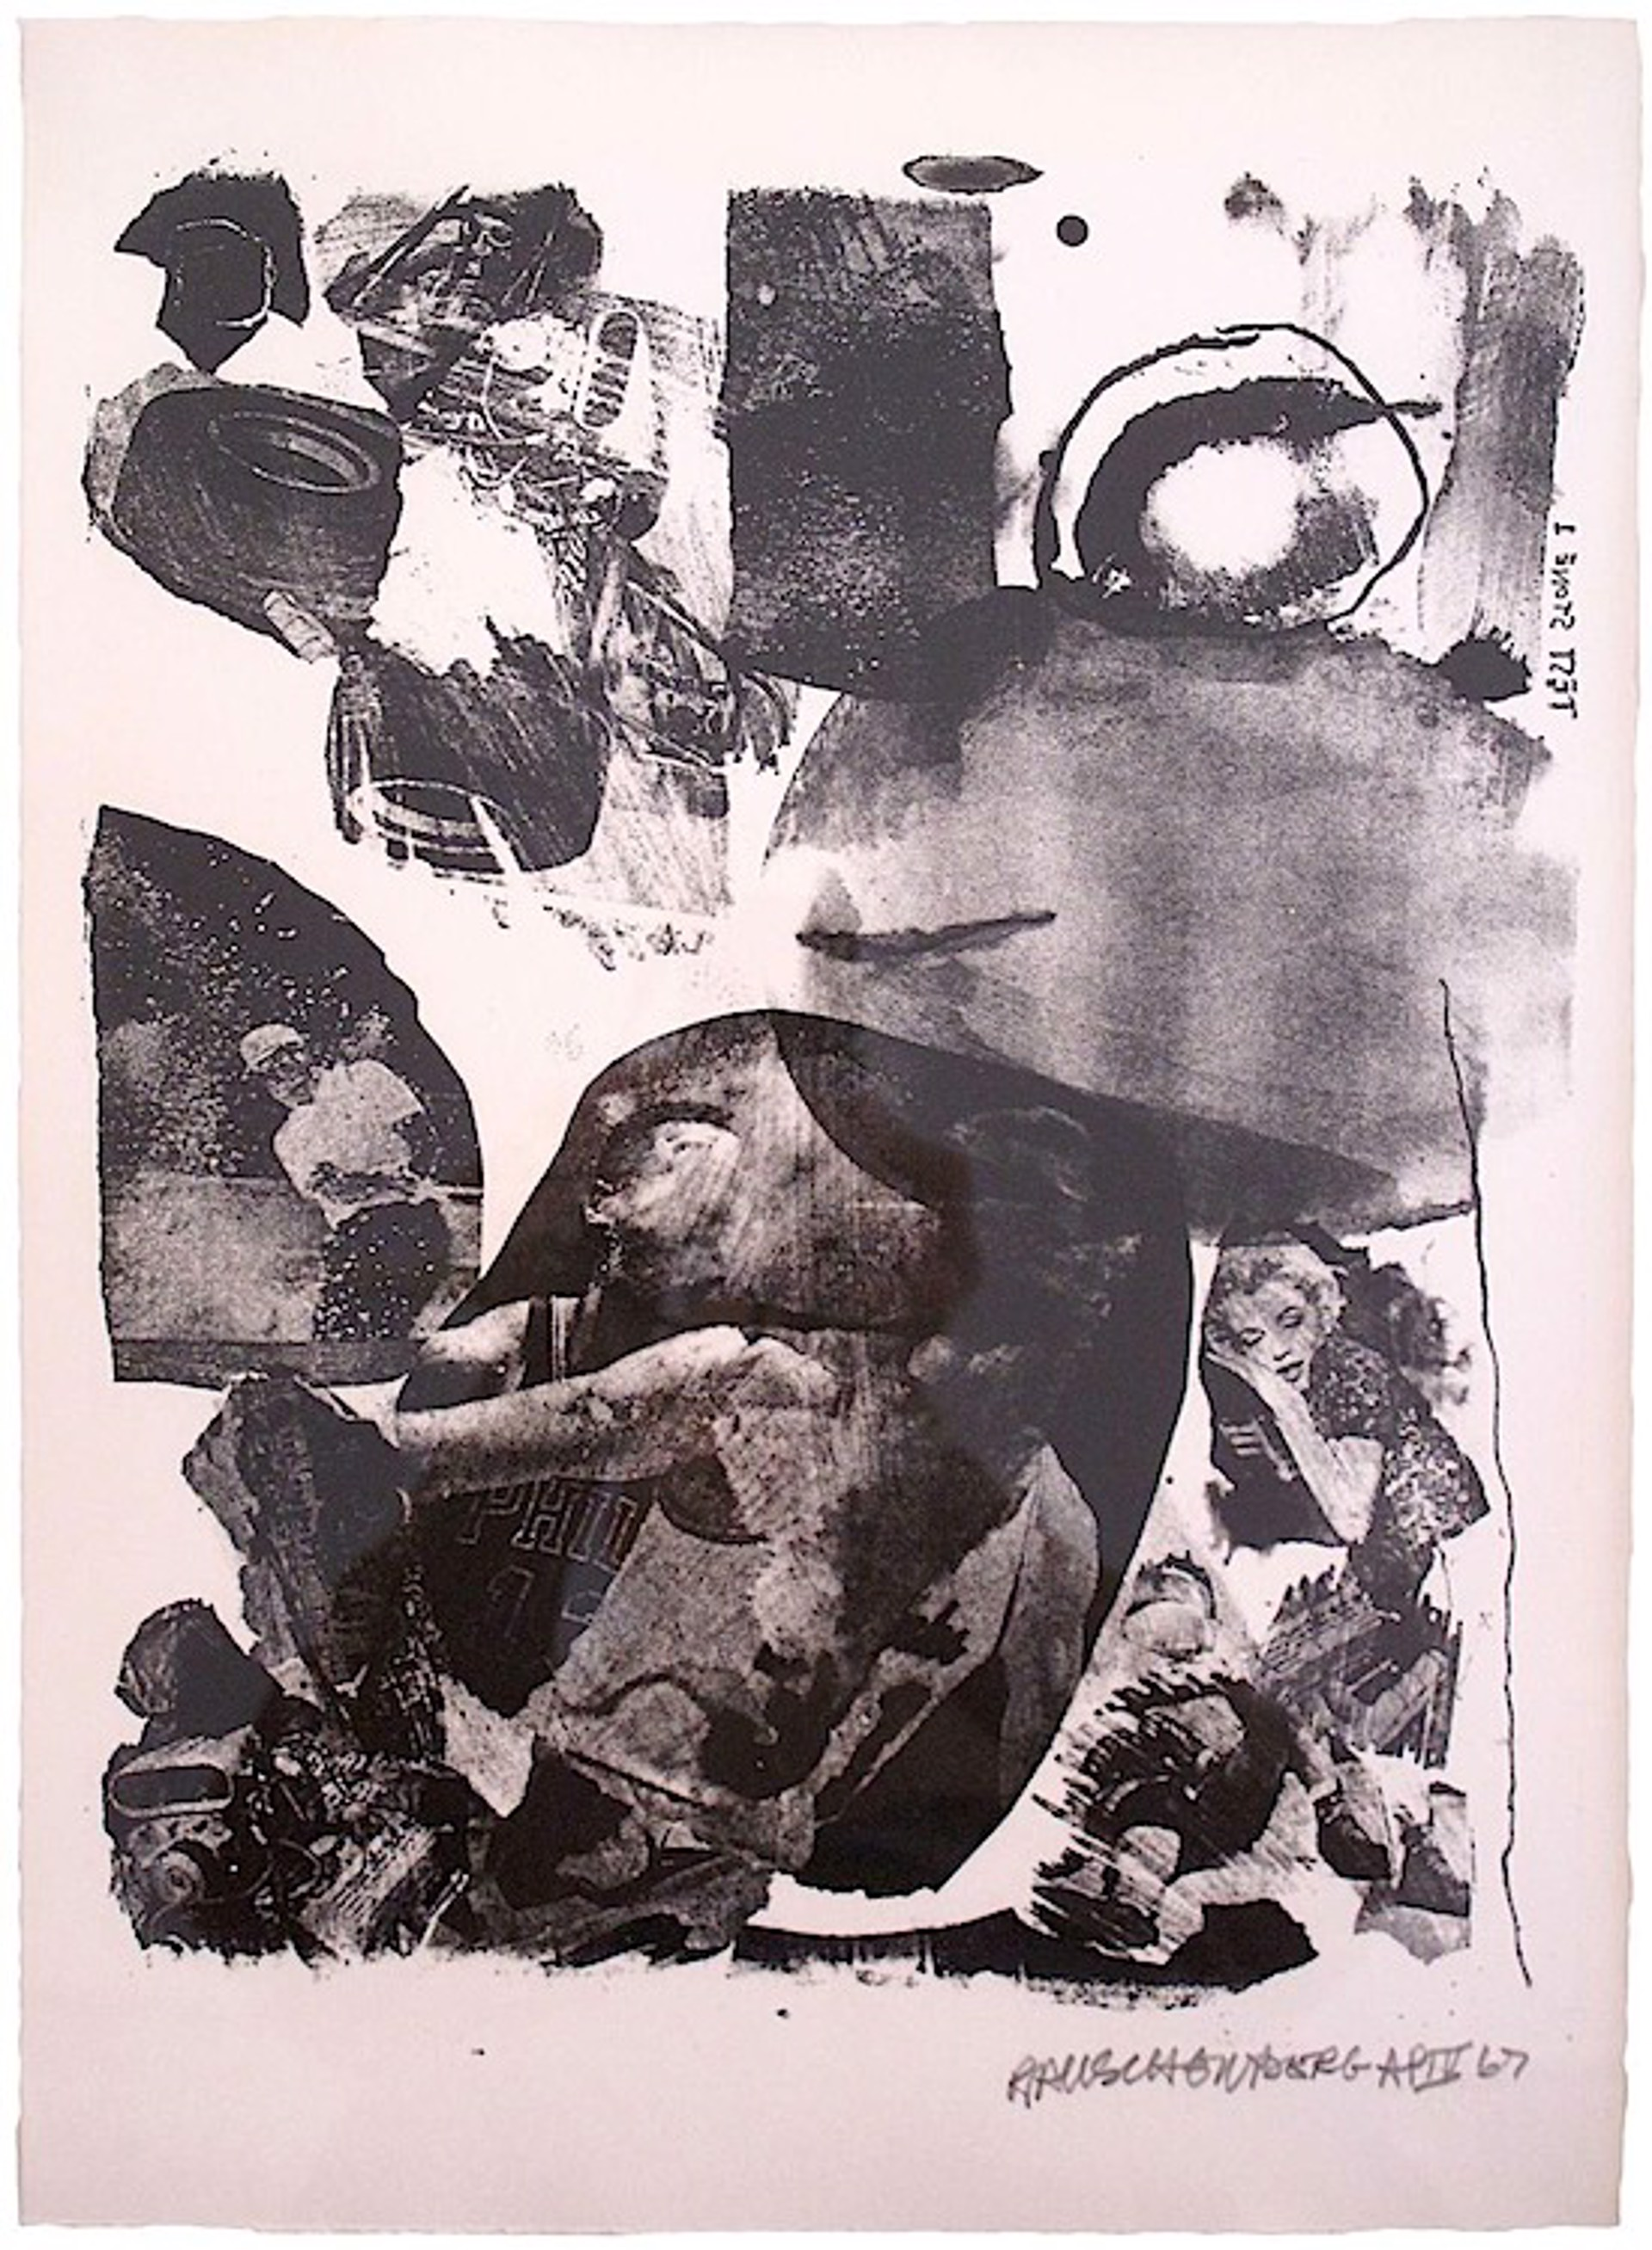 Test Stone #1 br (Marilyn Monroe)from the 'Booster and 7 Studies' series by Robert Rauschenberg